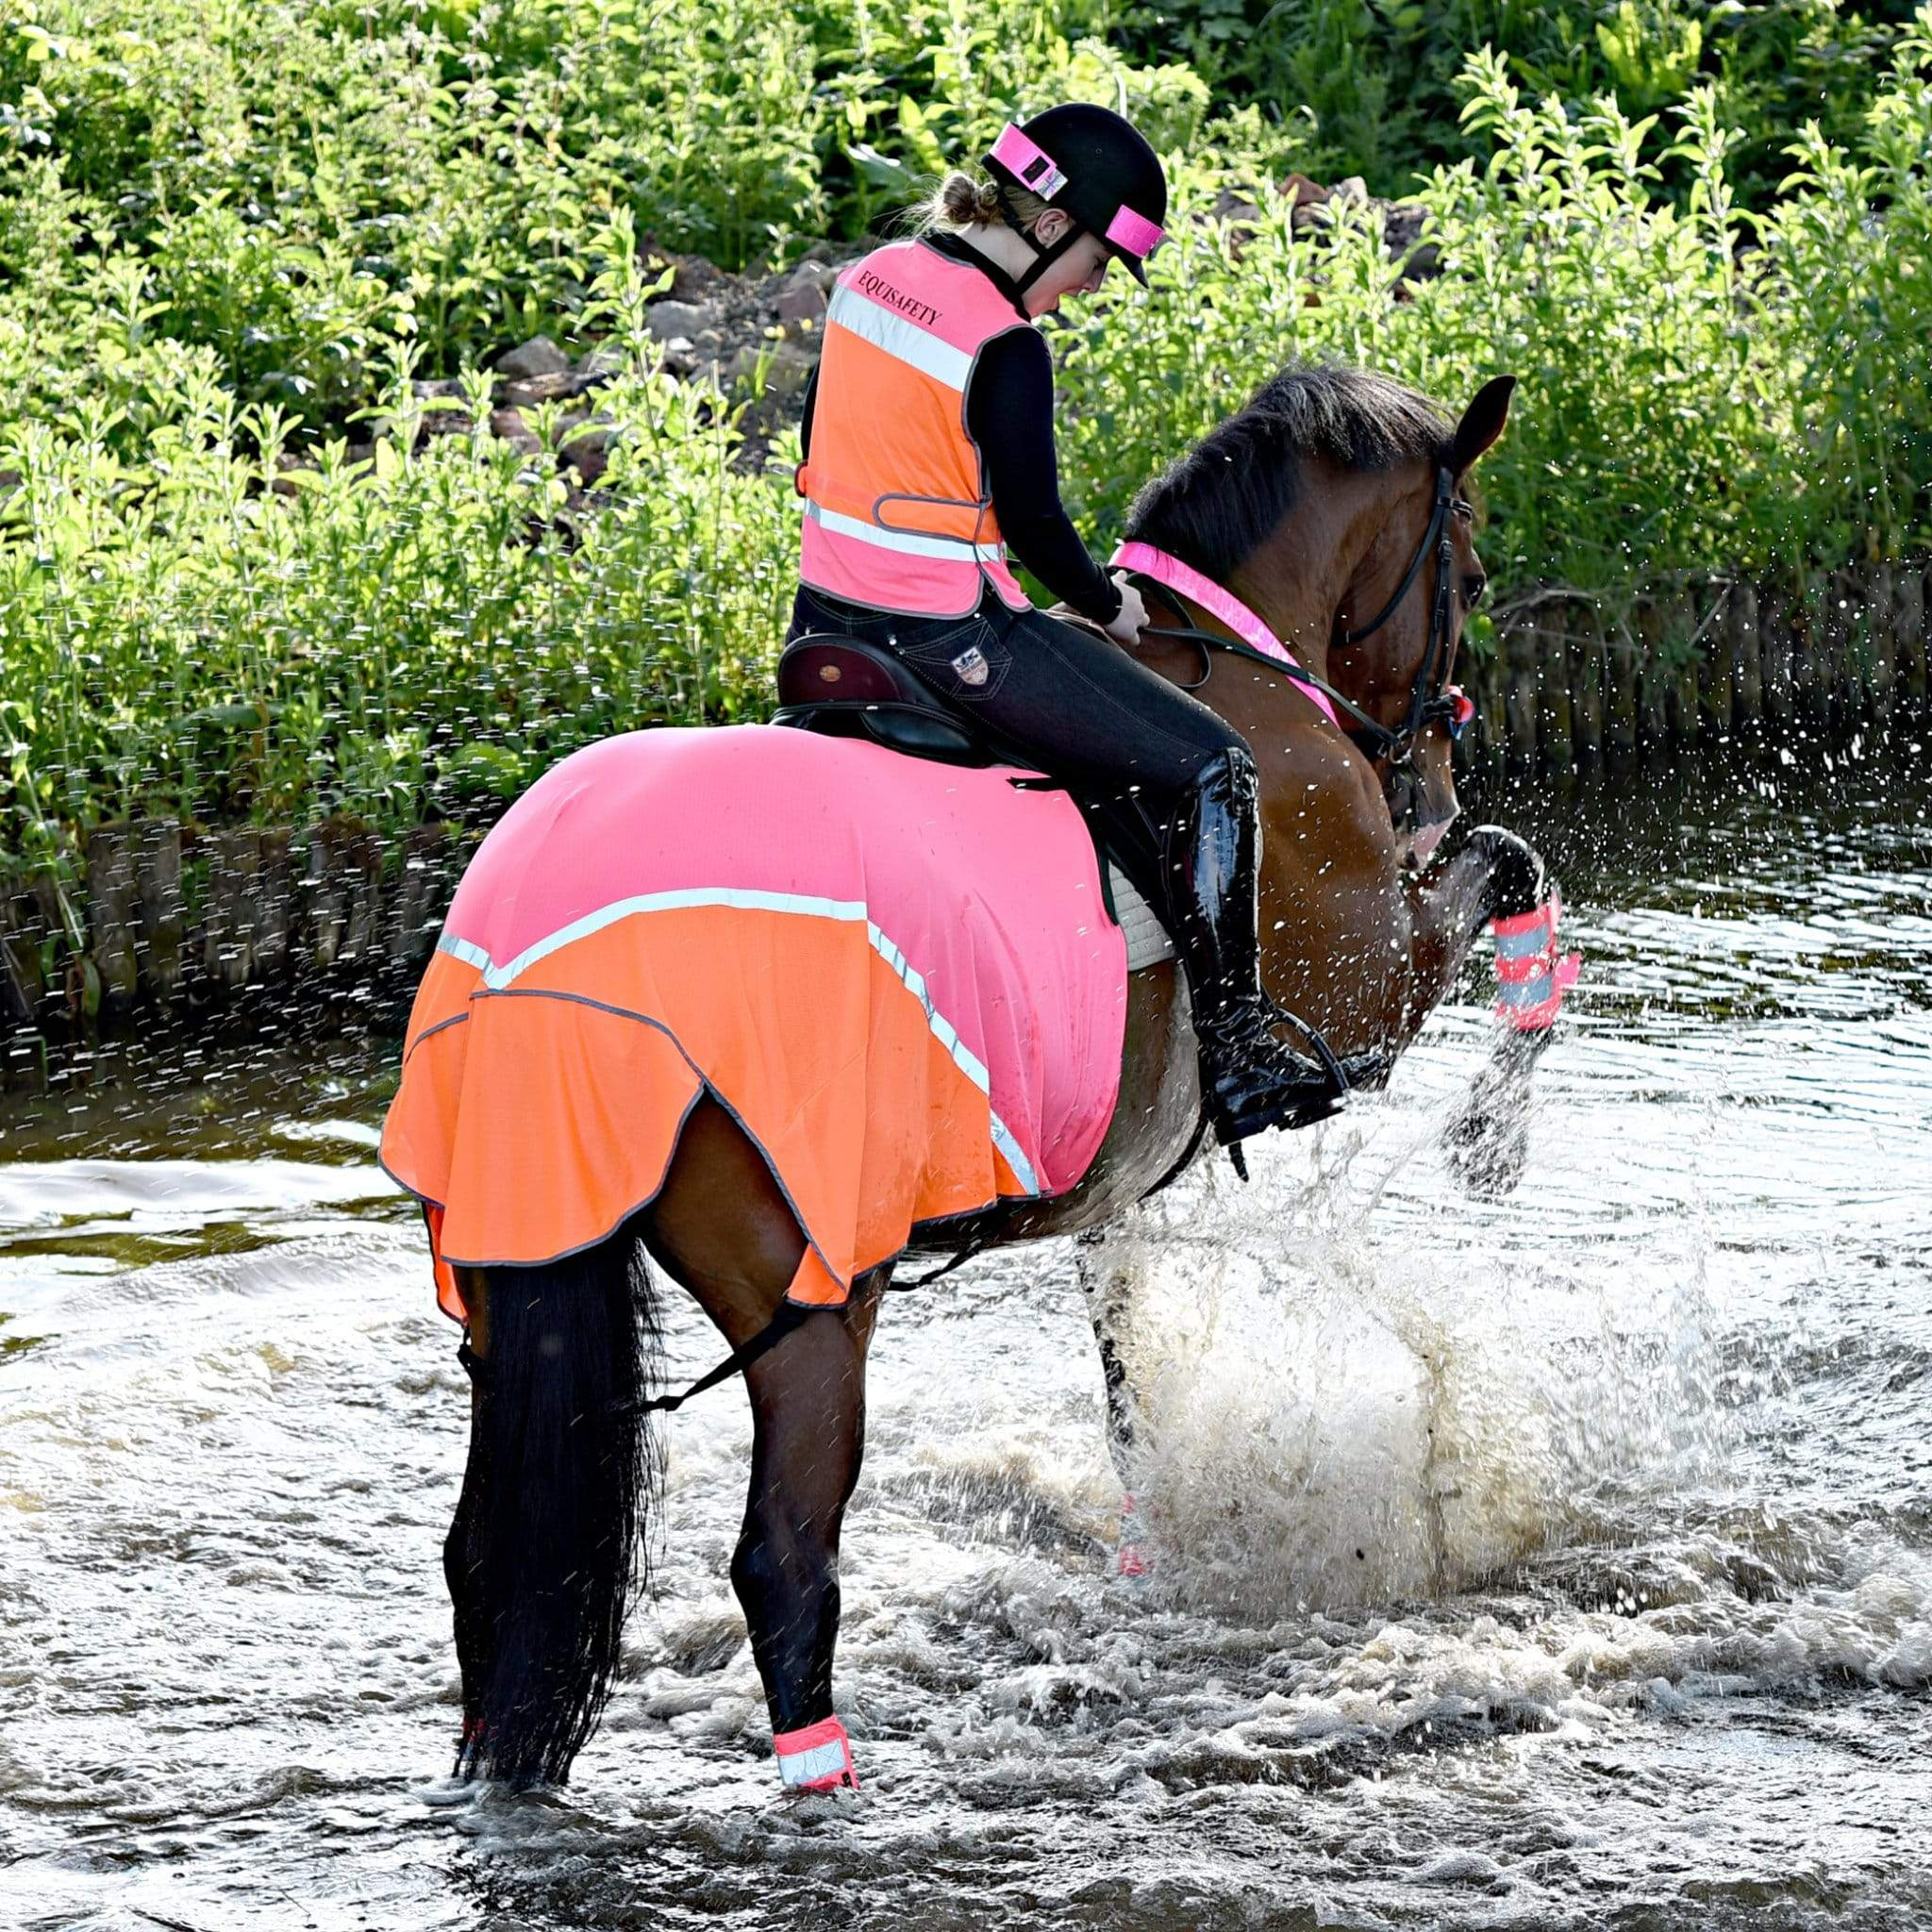 Equisafety Charlotte Dujardin Multi-Coloured Hi-Viz Exercise Sheet MR Pink and Orange Horse Splashing